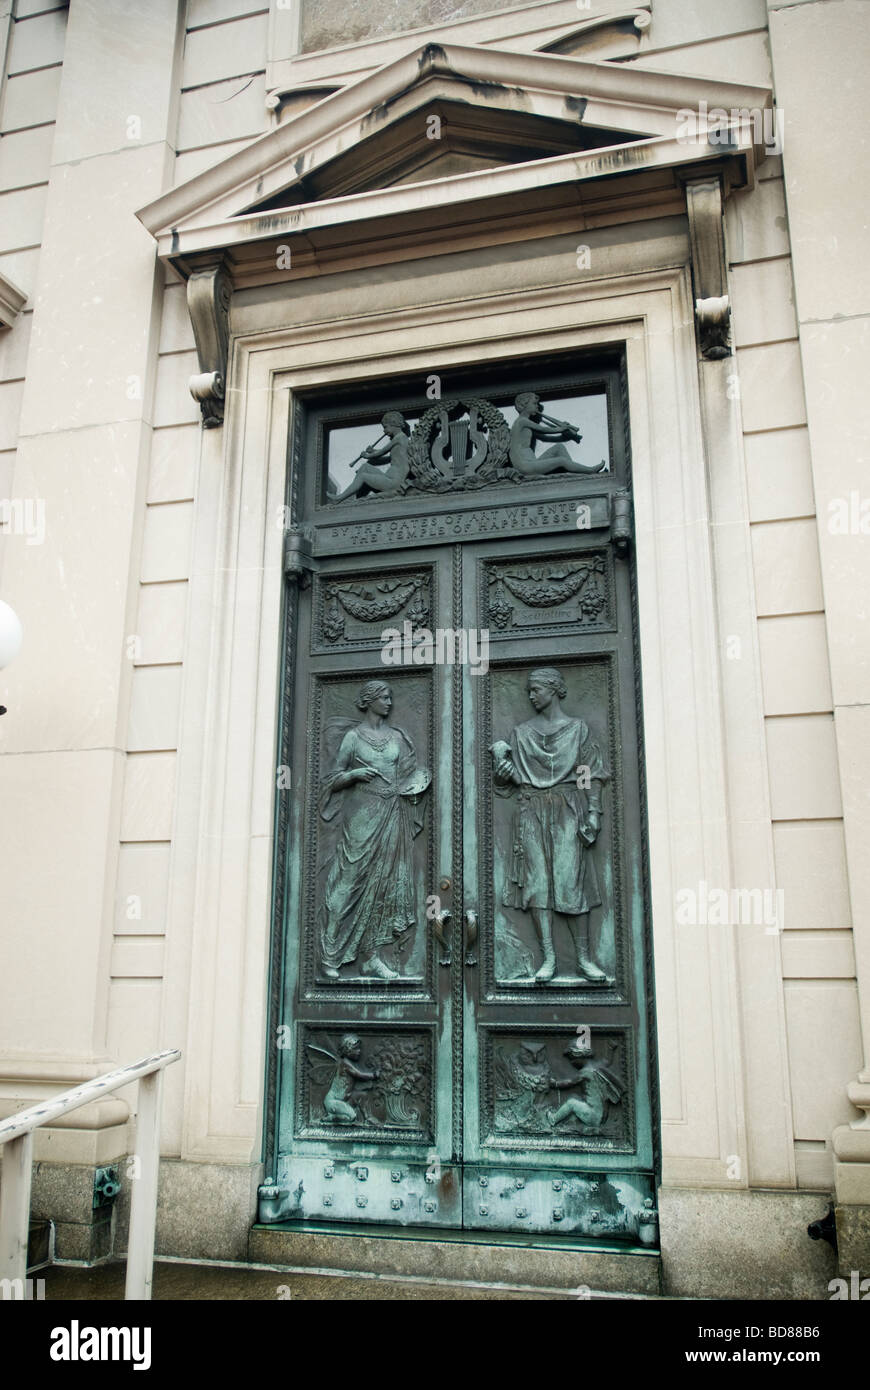 The bronze entrance doors to the American Academy of Arts and